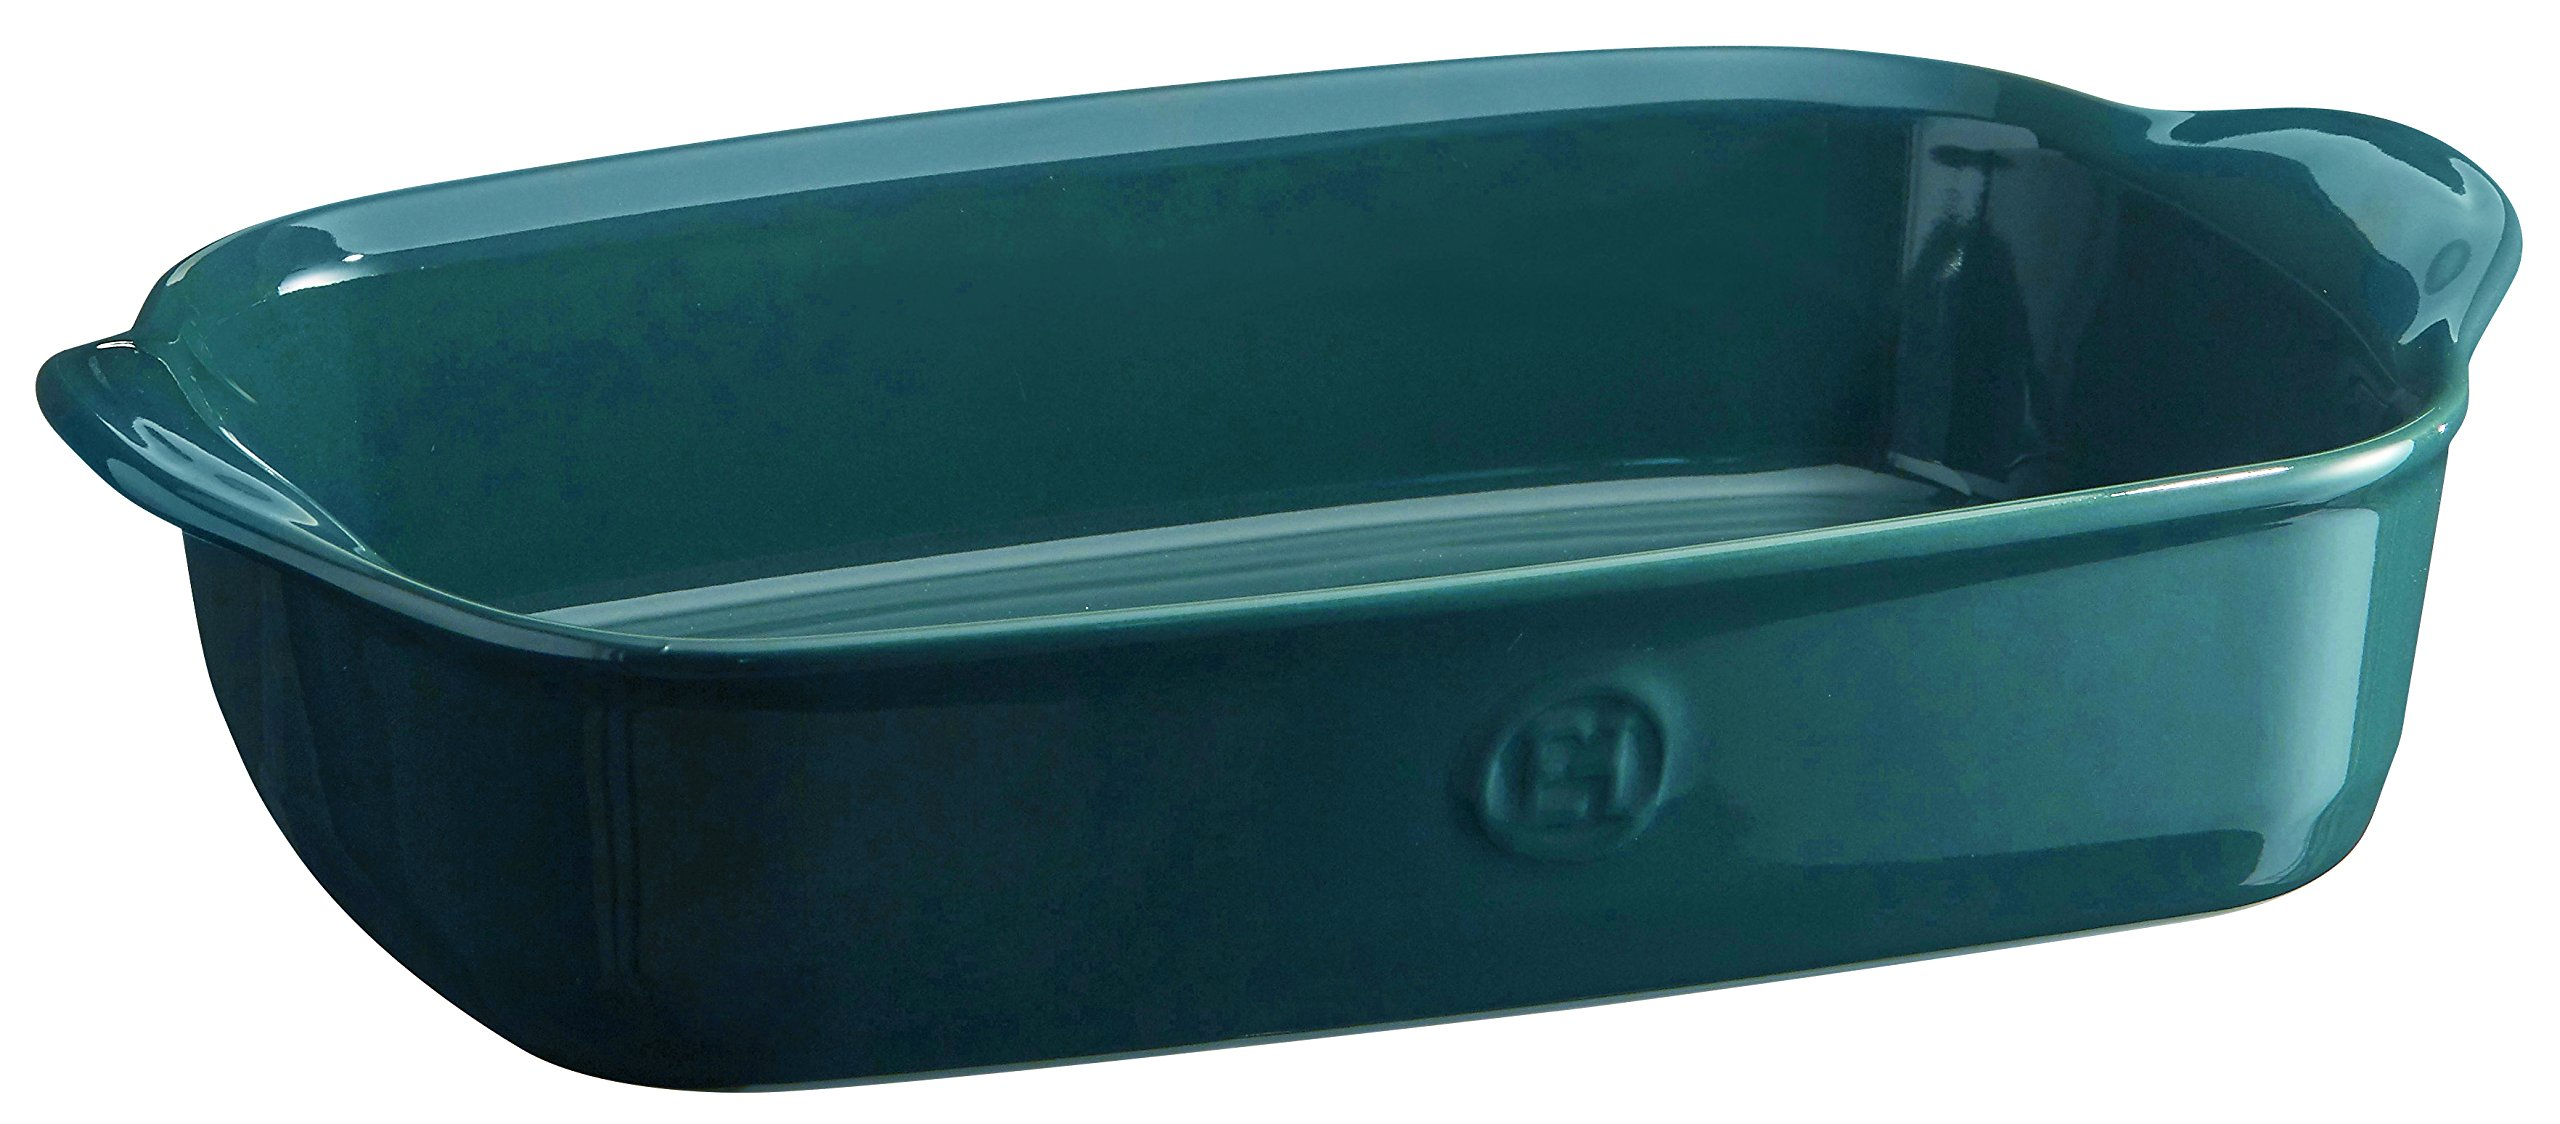 Emile Henry 979650 France Ovenware Ultime Rectangular Baking Dish, 11.4 x 7.5, Blue